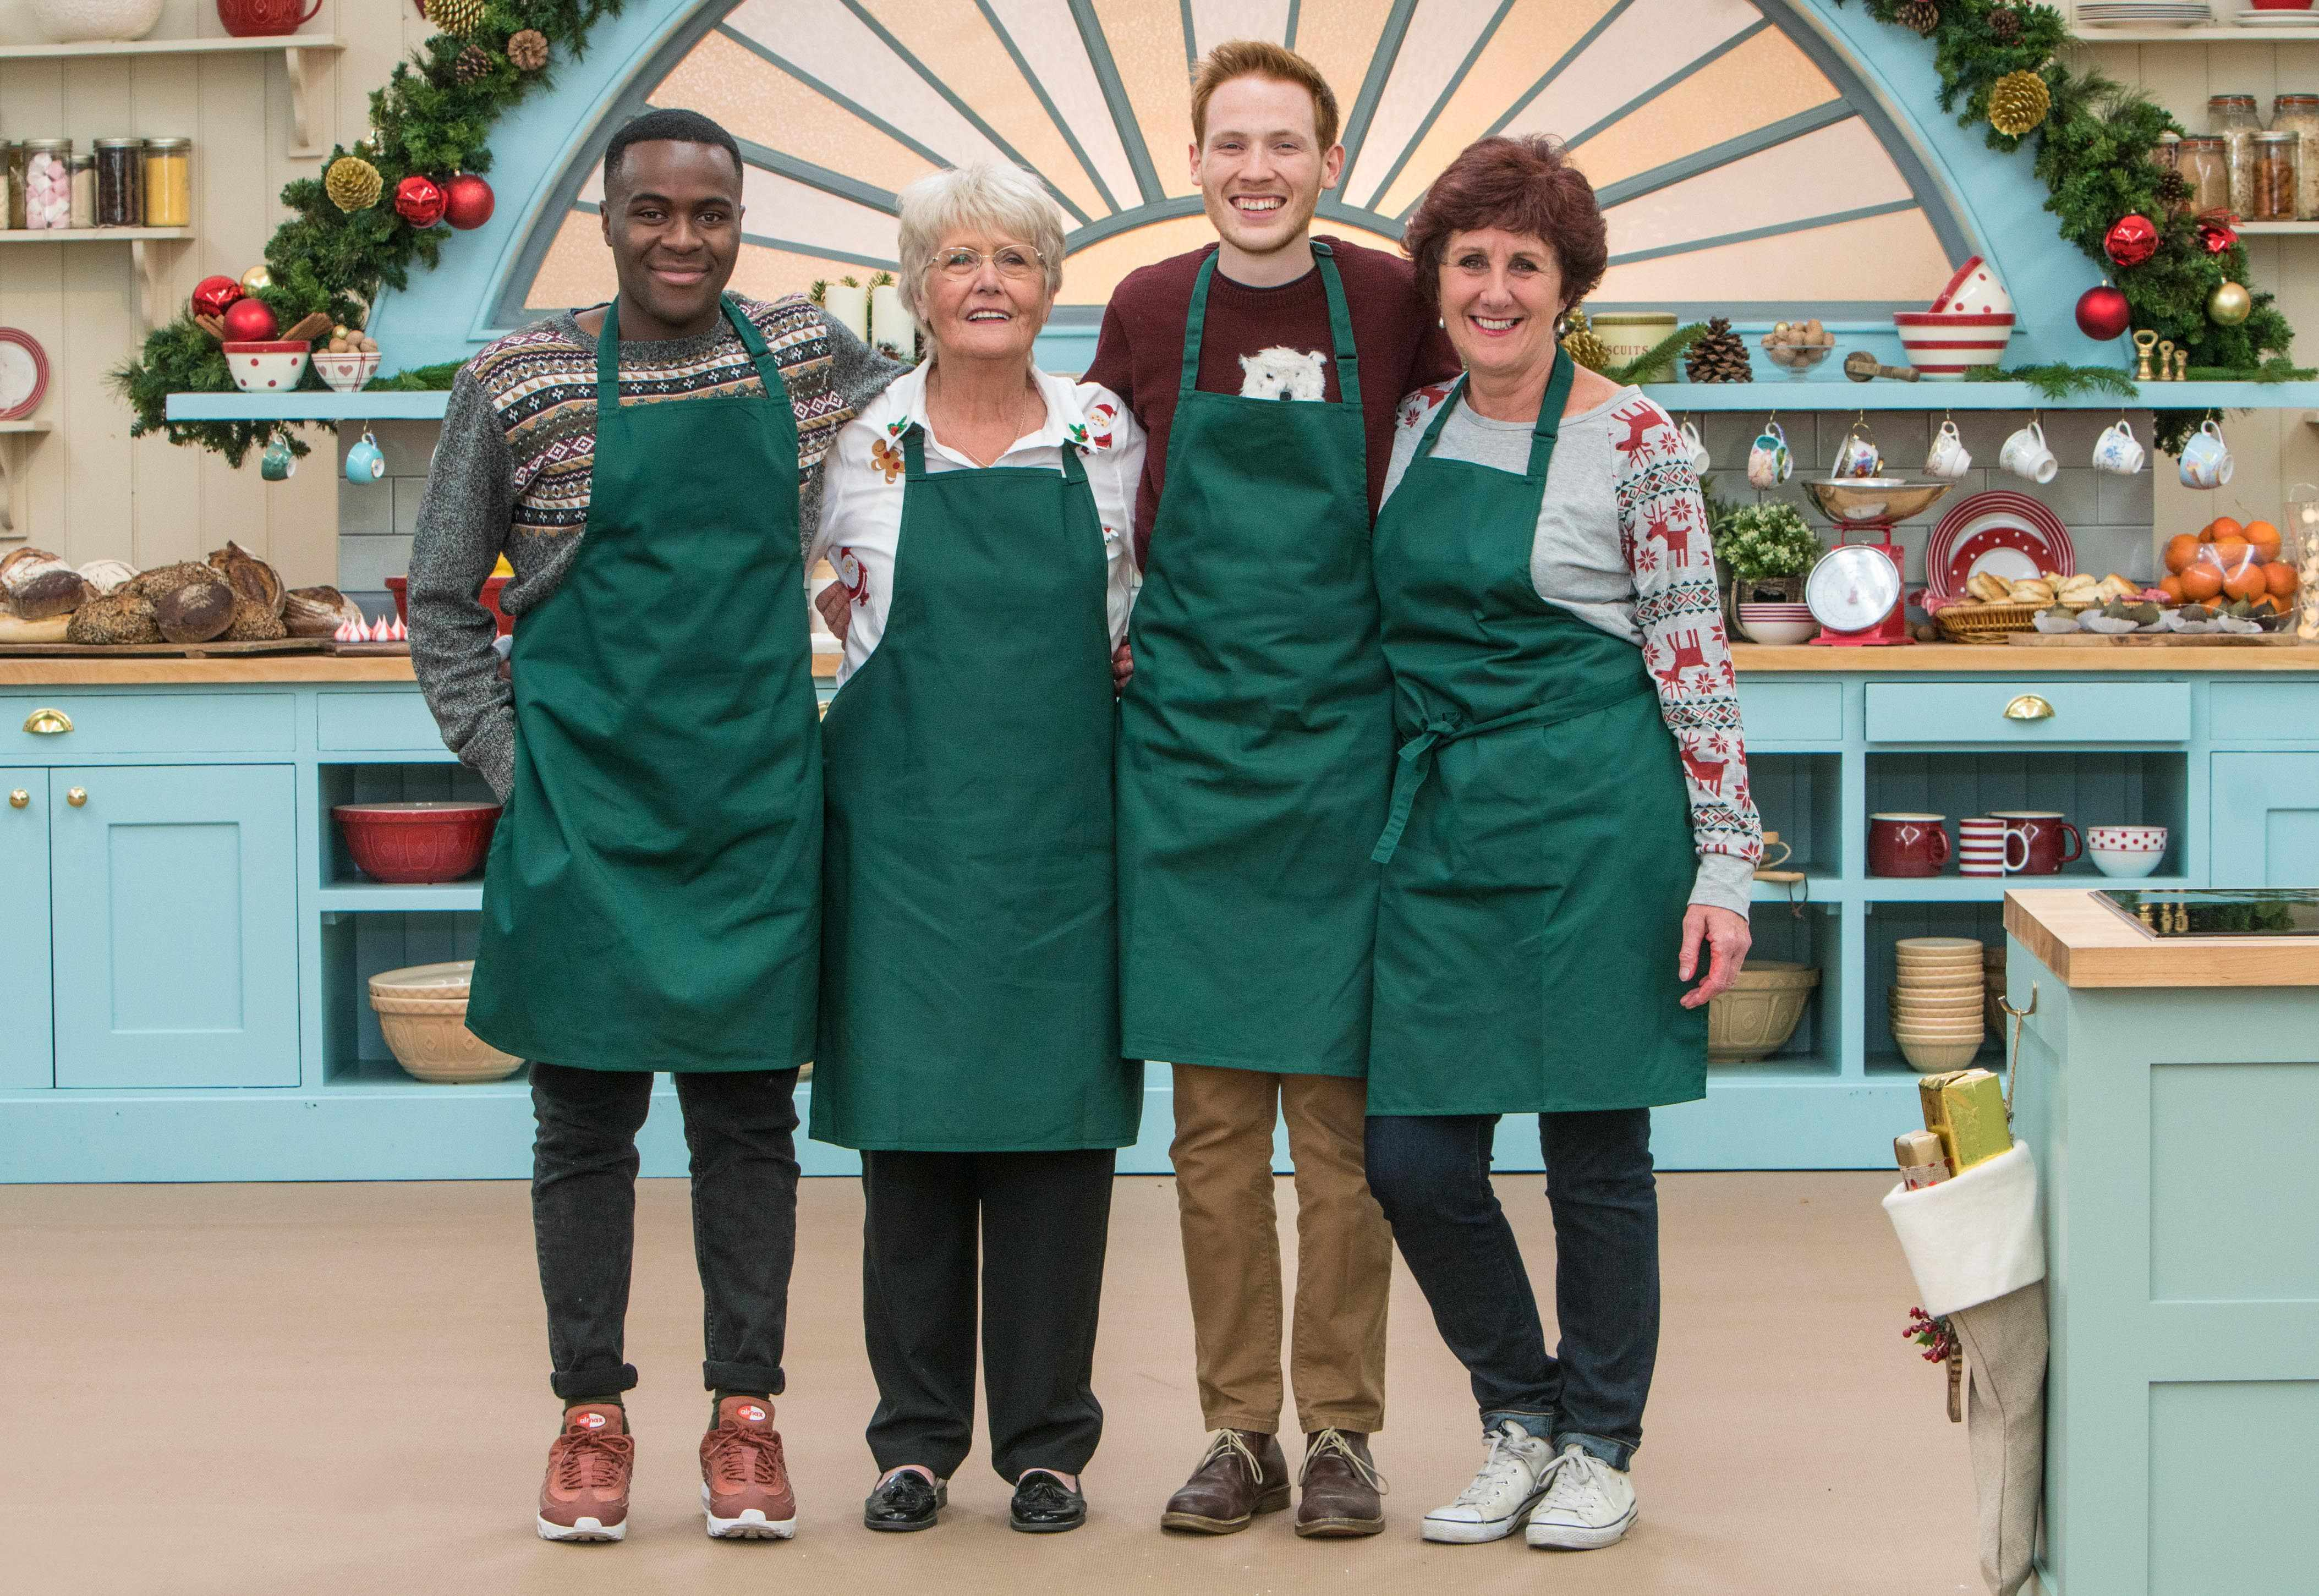 Bakers Liam, Flo, Andrew and Jane, The Great Christmas British Bake Off